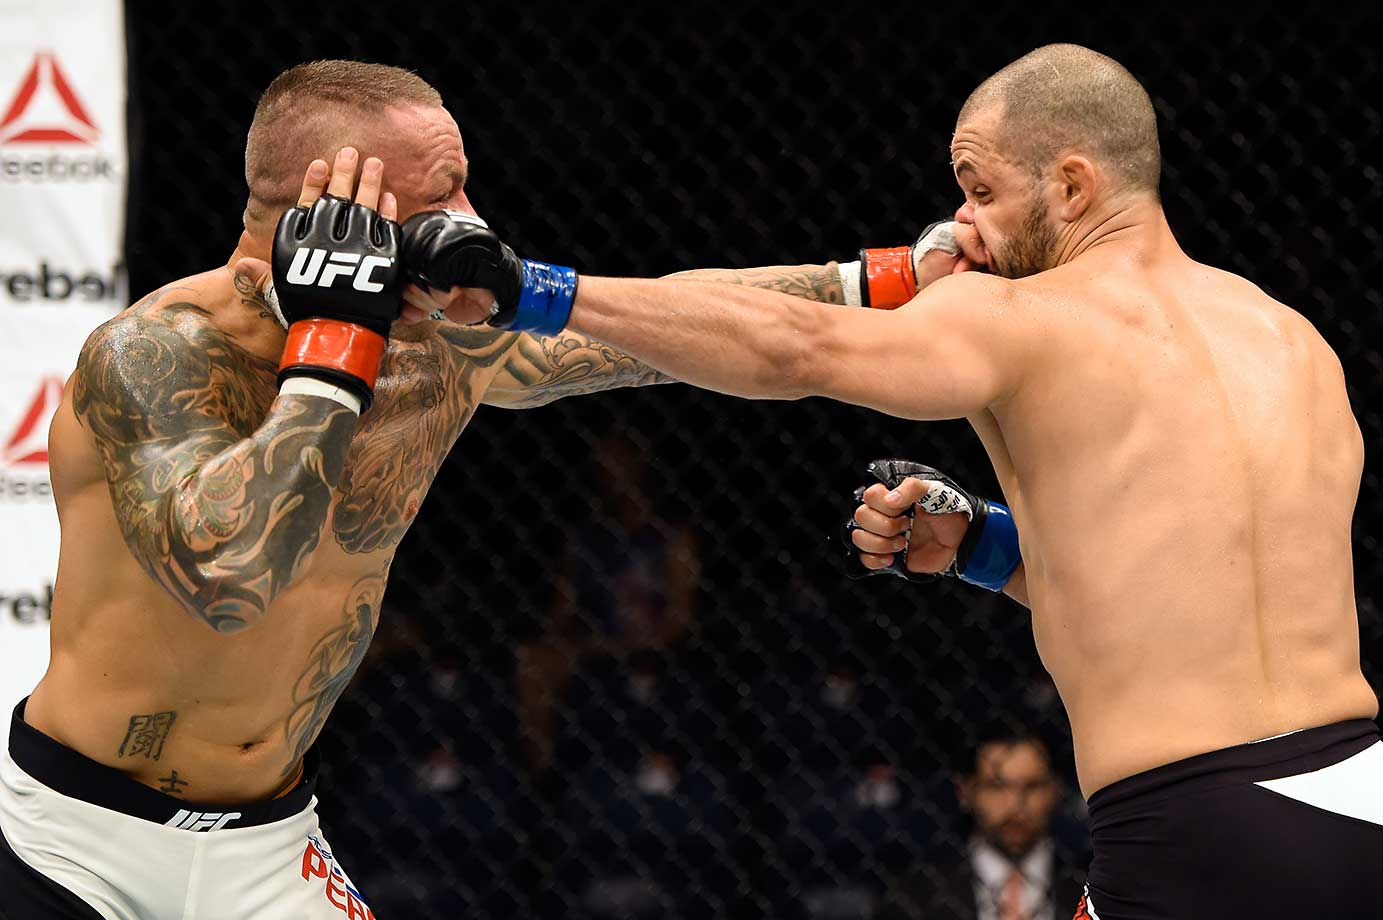 Ross Pearson of England punches Chad Laprise of Canada in their lightweight bout during the UFC Fight Night event in Brisbane, Australia.